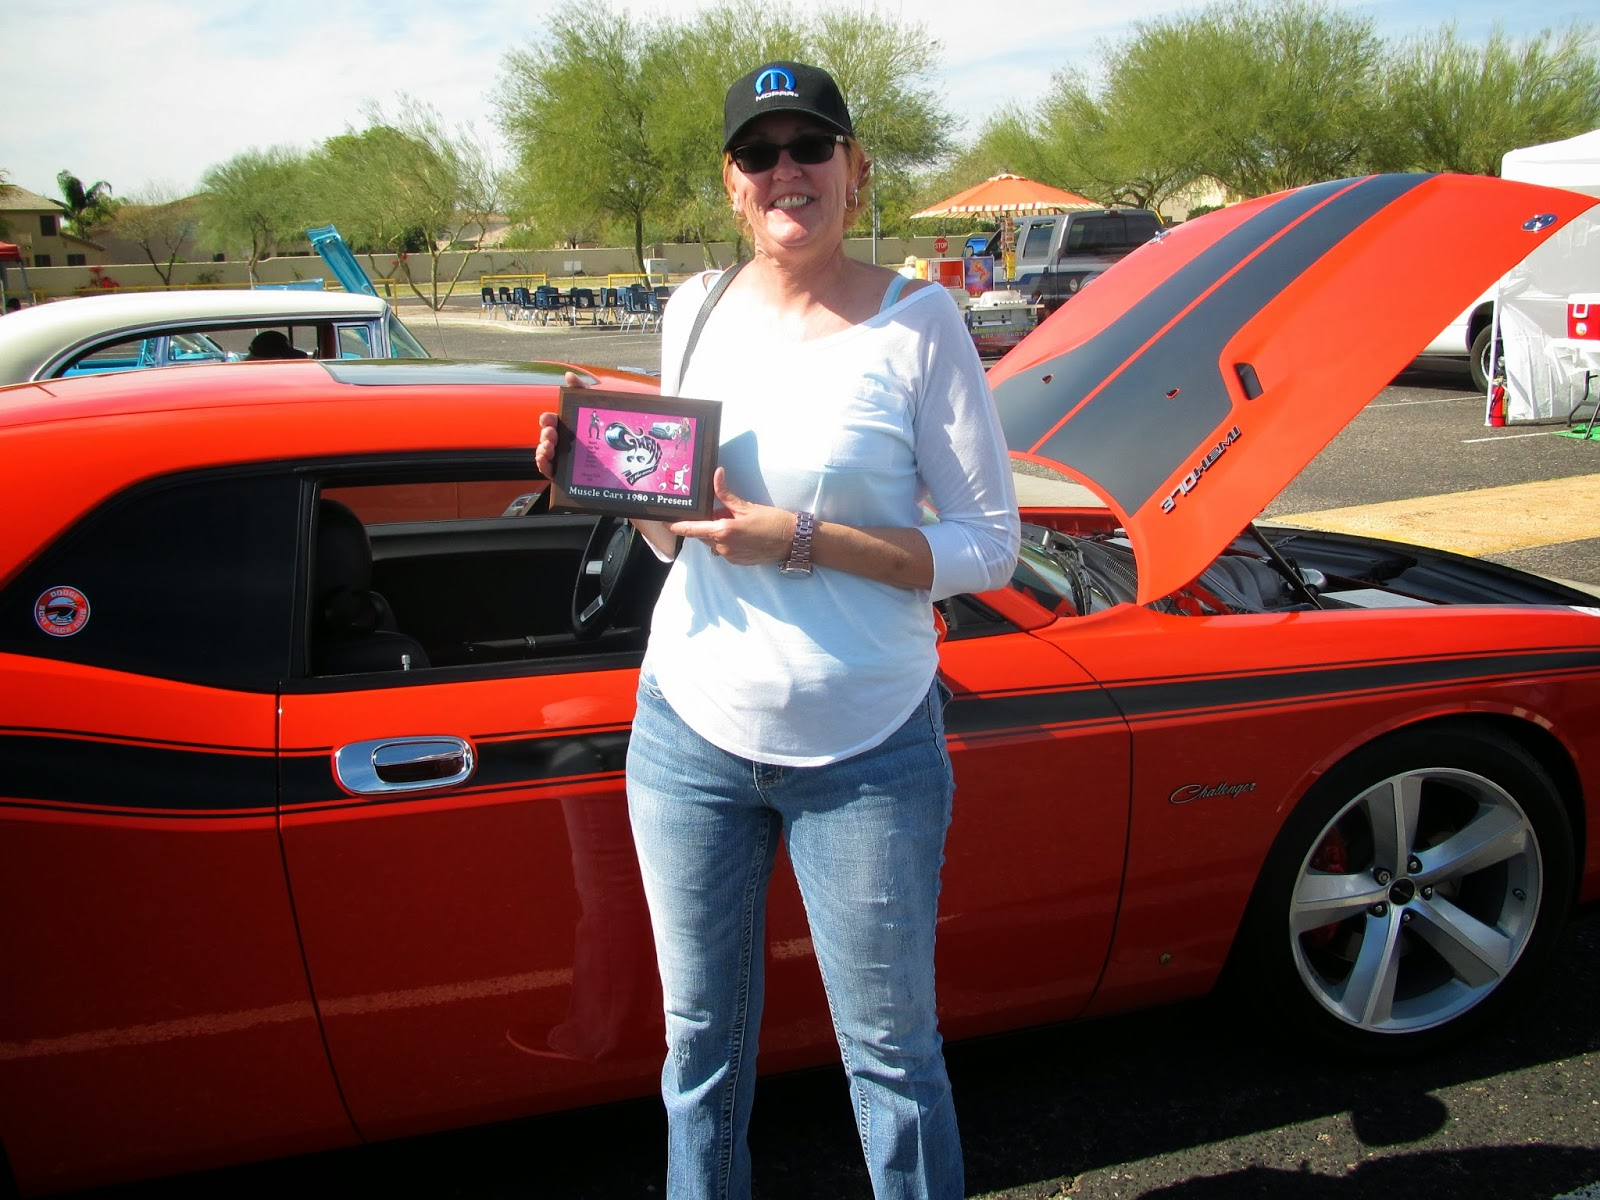 Car Show Award Jax Wax Customer